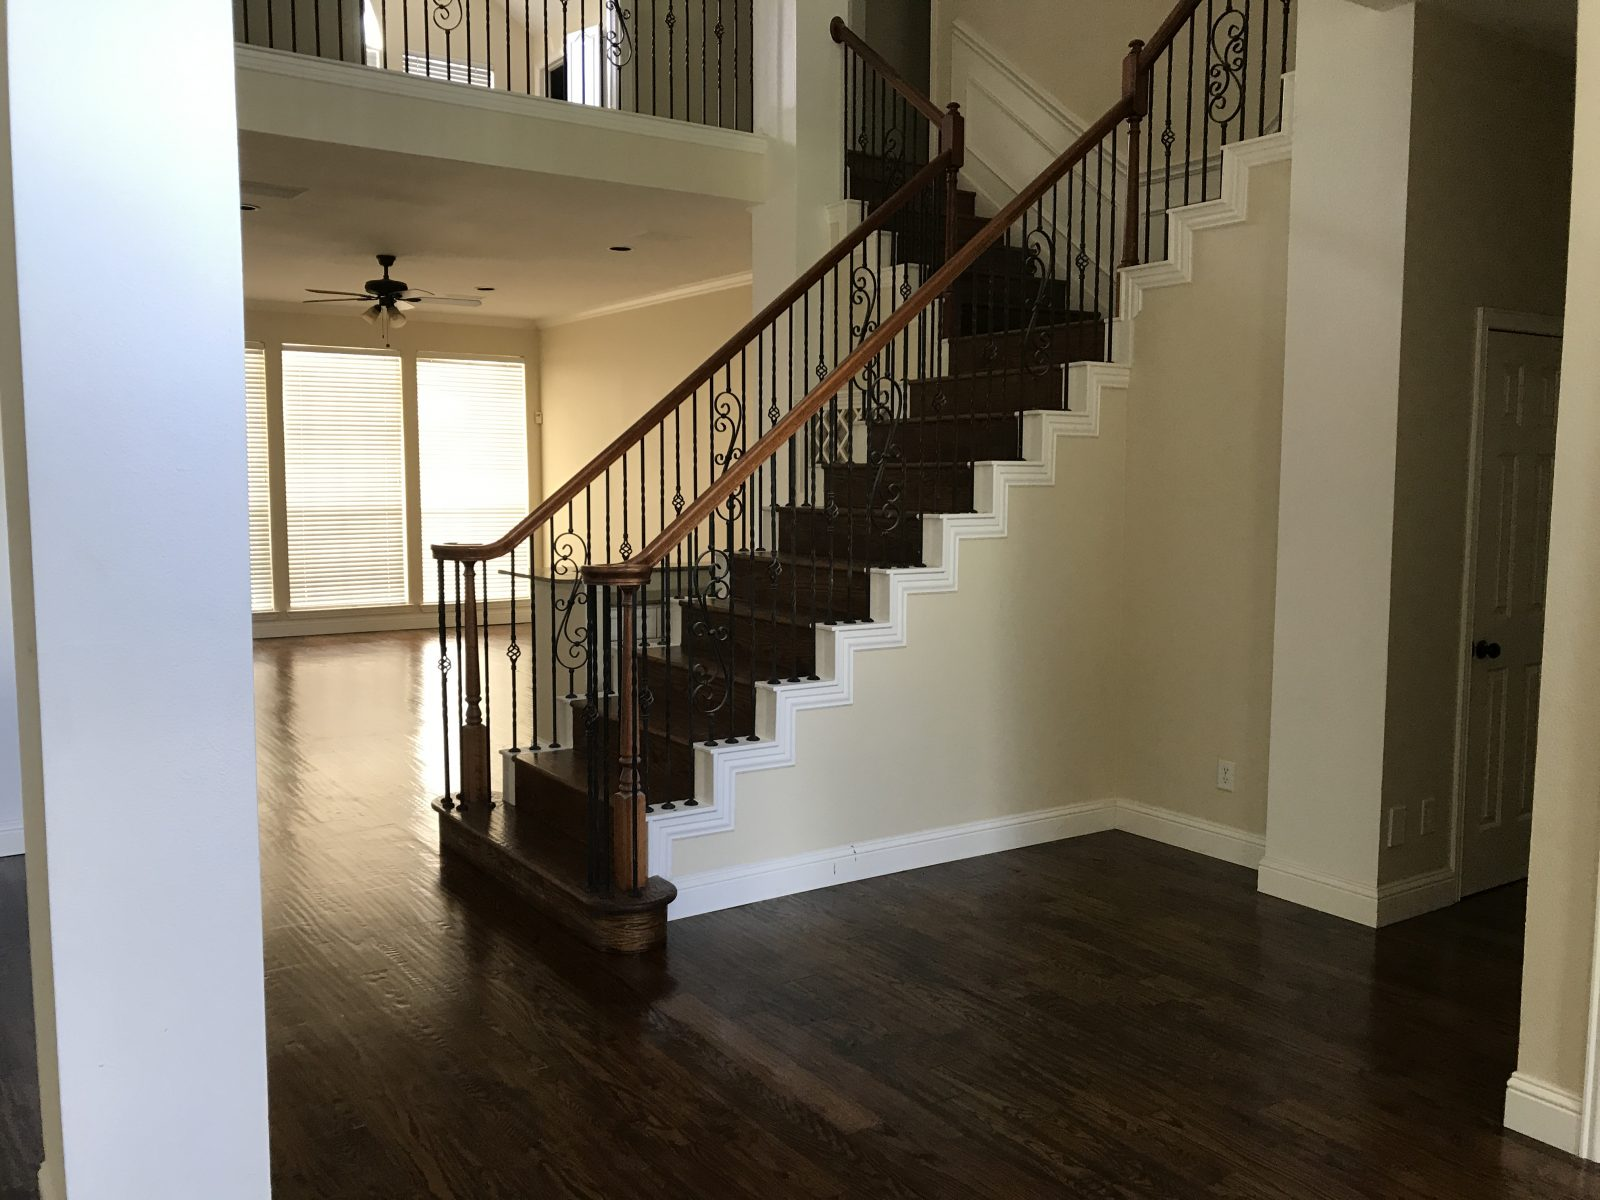 Installing Hardwood Floors Is A Great Way To Incorporate Natural Materials  Into Interior Design And Everyday Life. We Have Installed This Beautiful  Wood ...